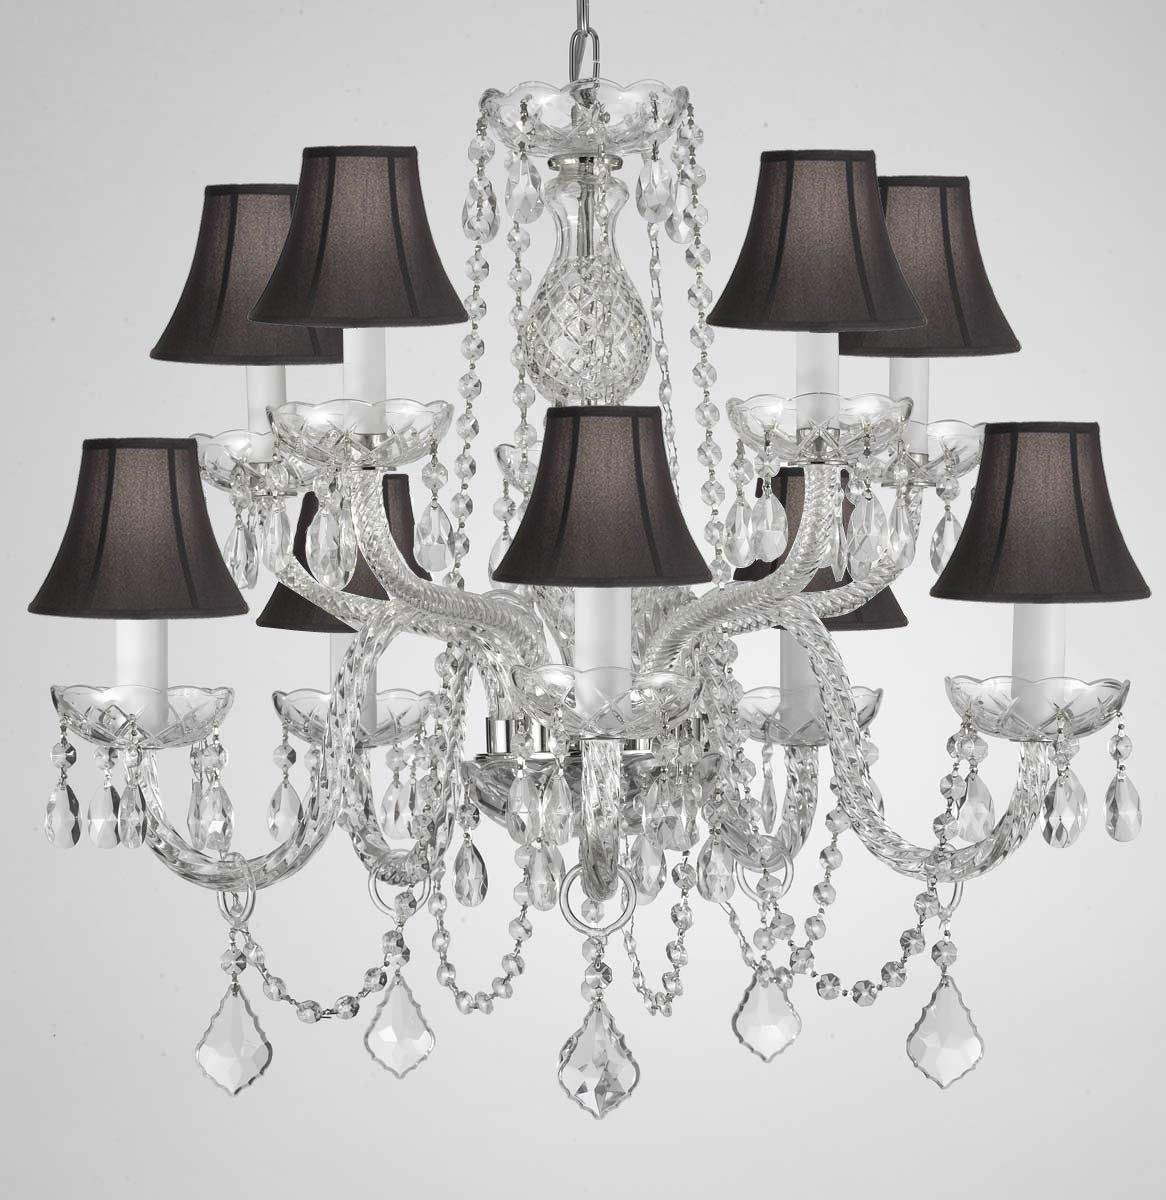 Crystal Chandelier Lighting With Black Shades H25 x W24 - Thumbnail 0